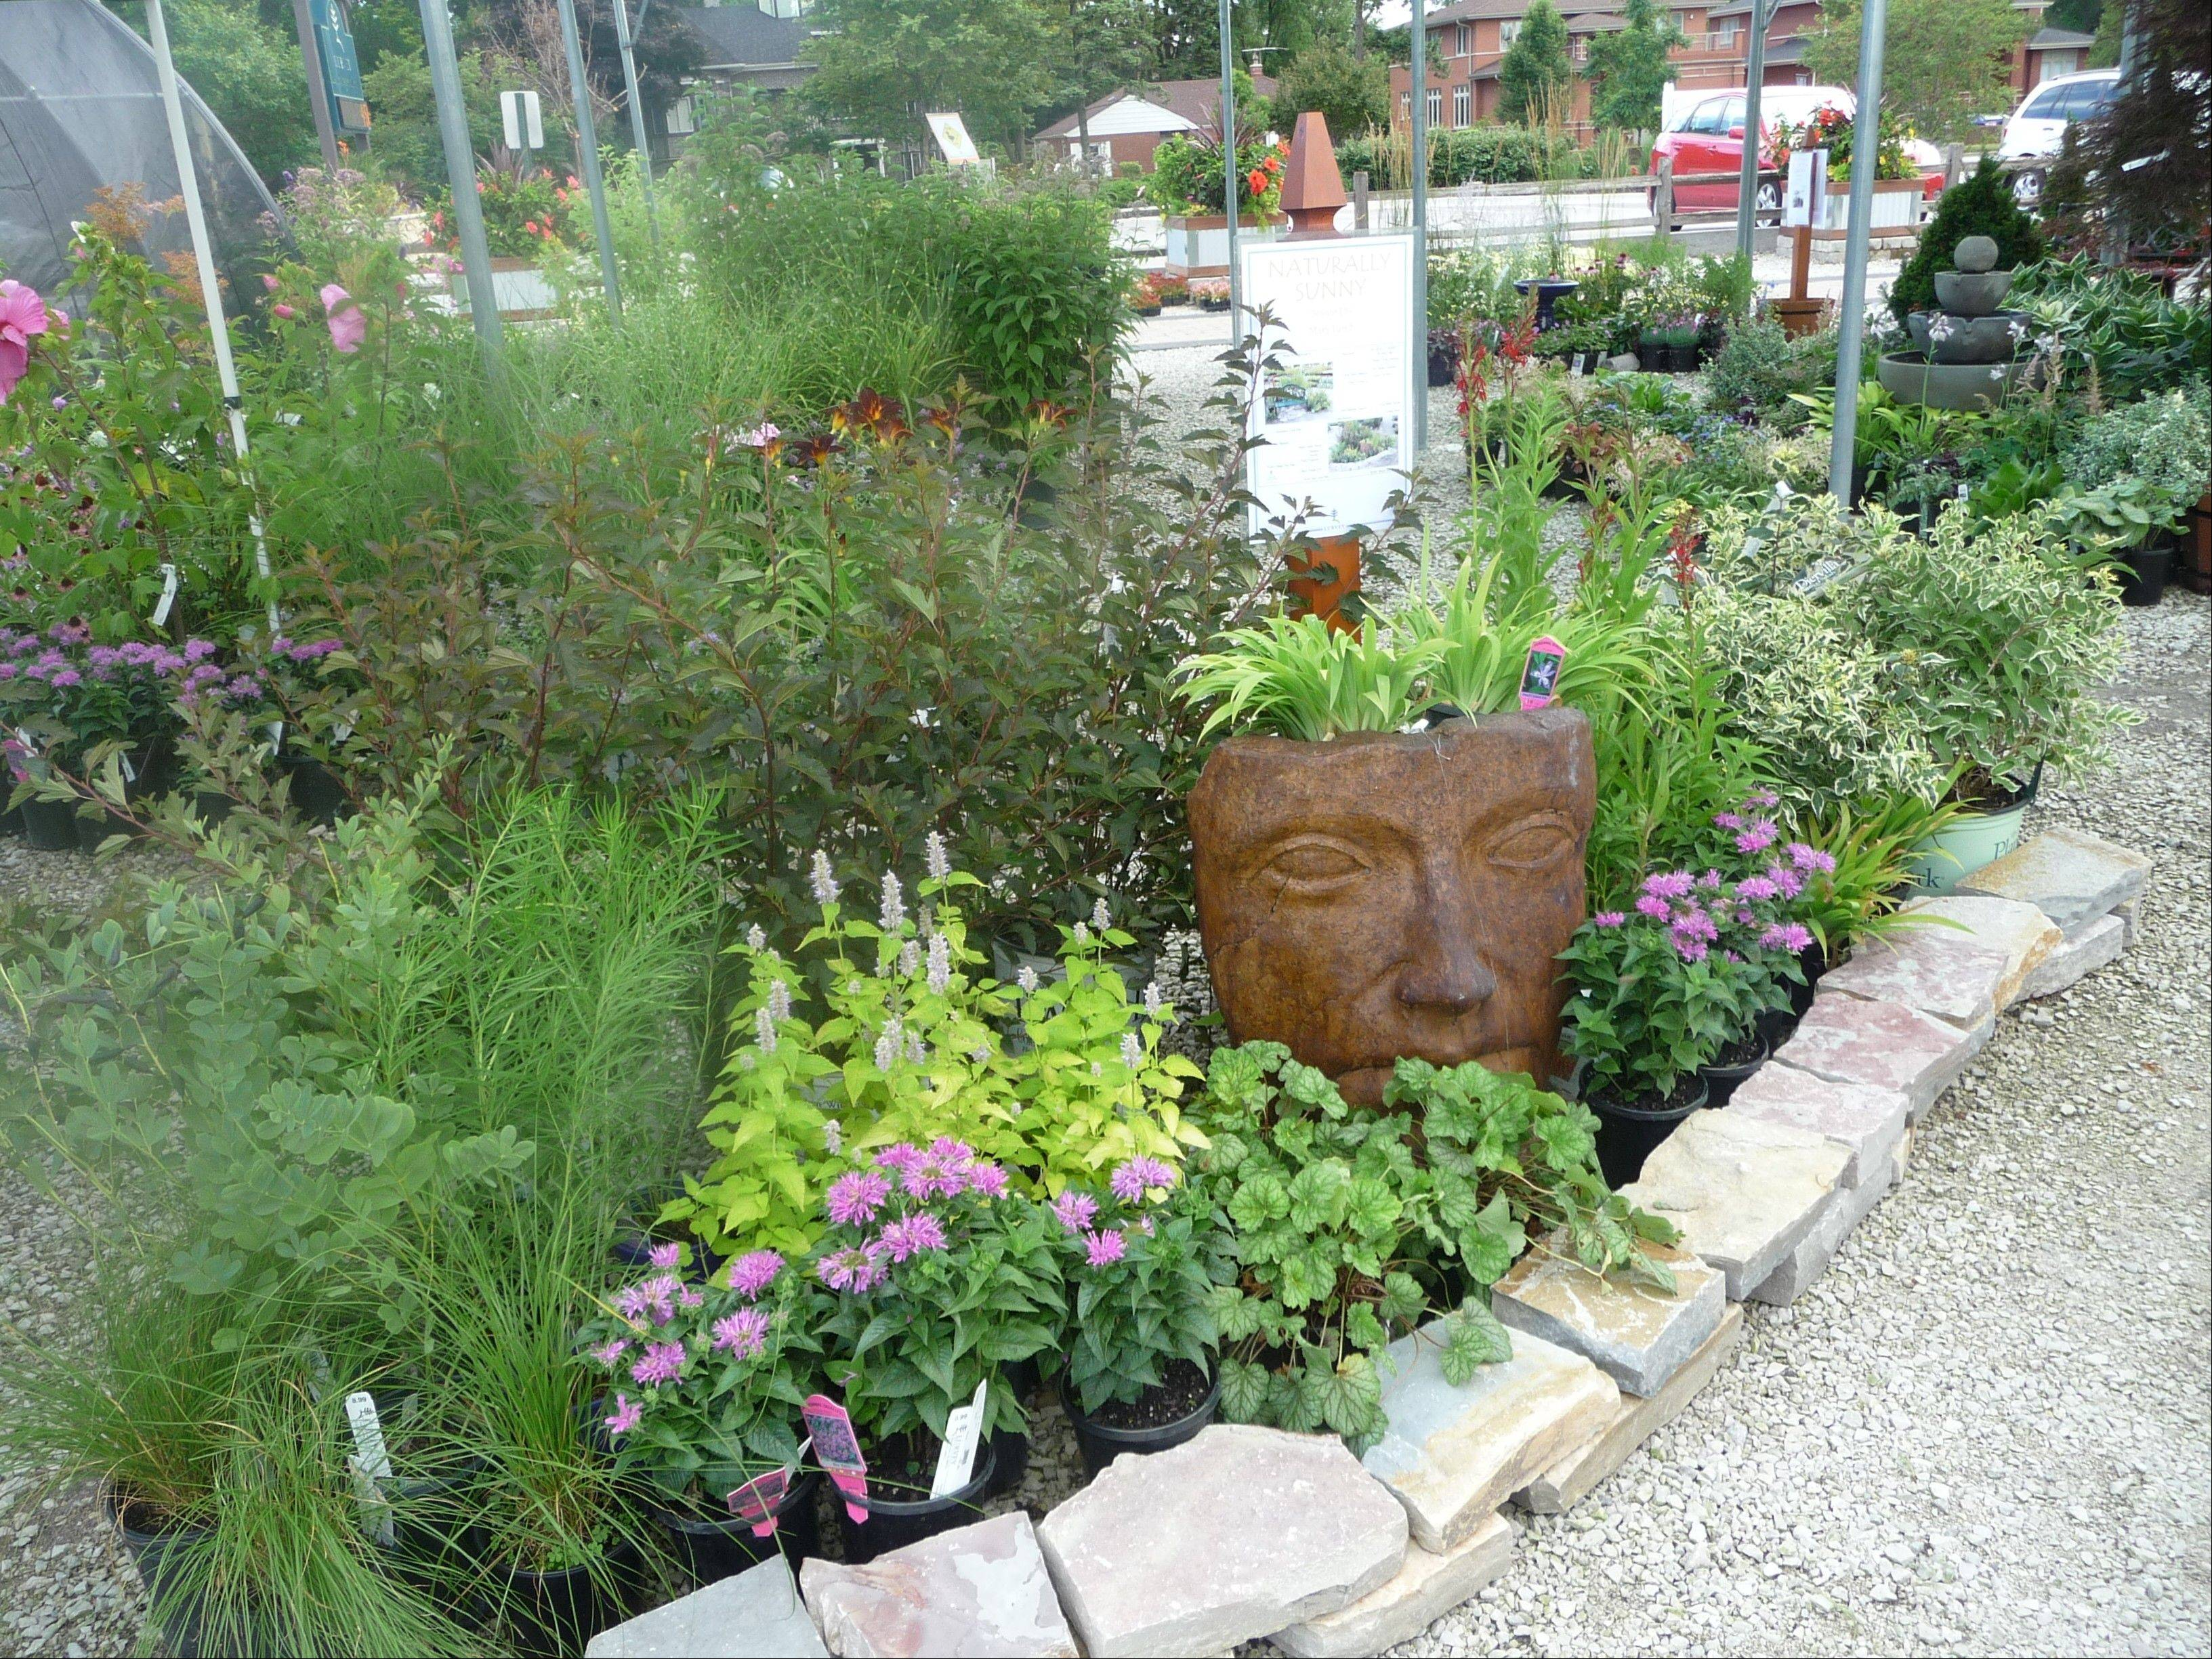 Lurvey's Garden Center in Des Plaines has plants and other products that will help customers build a sustainable landscape in their yard.